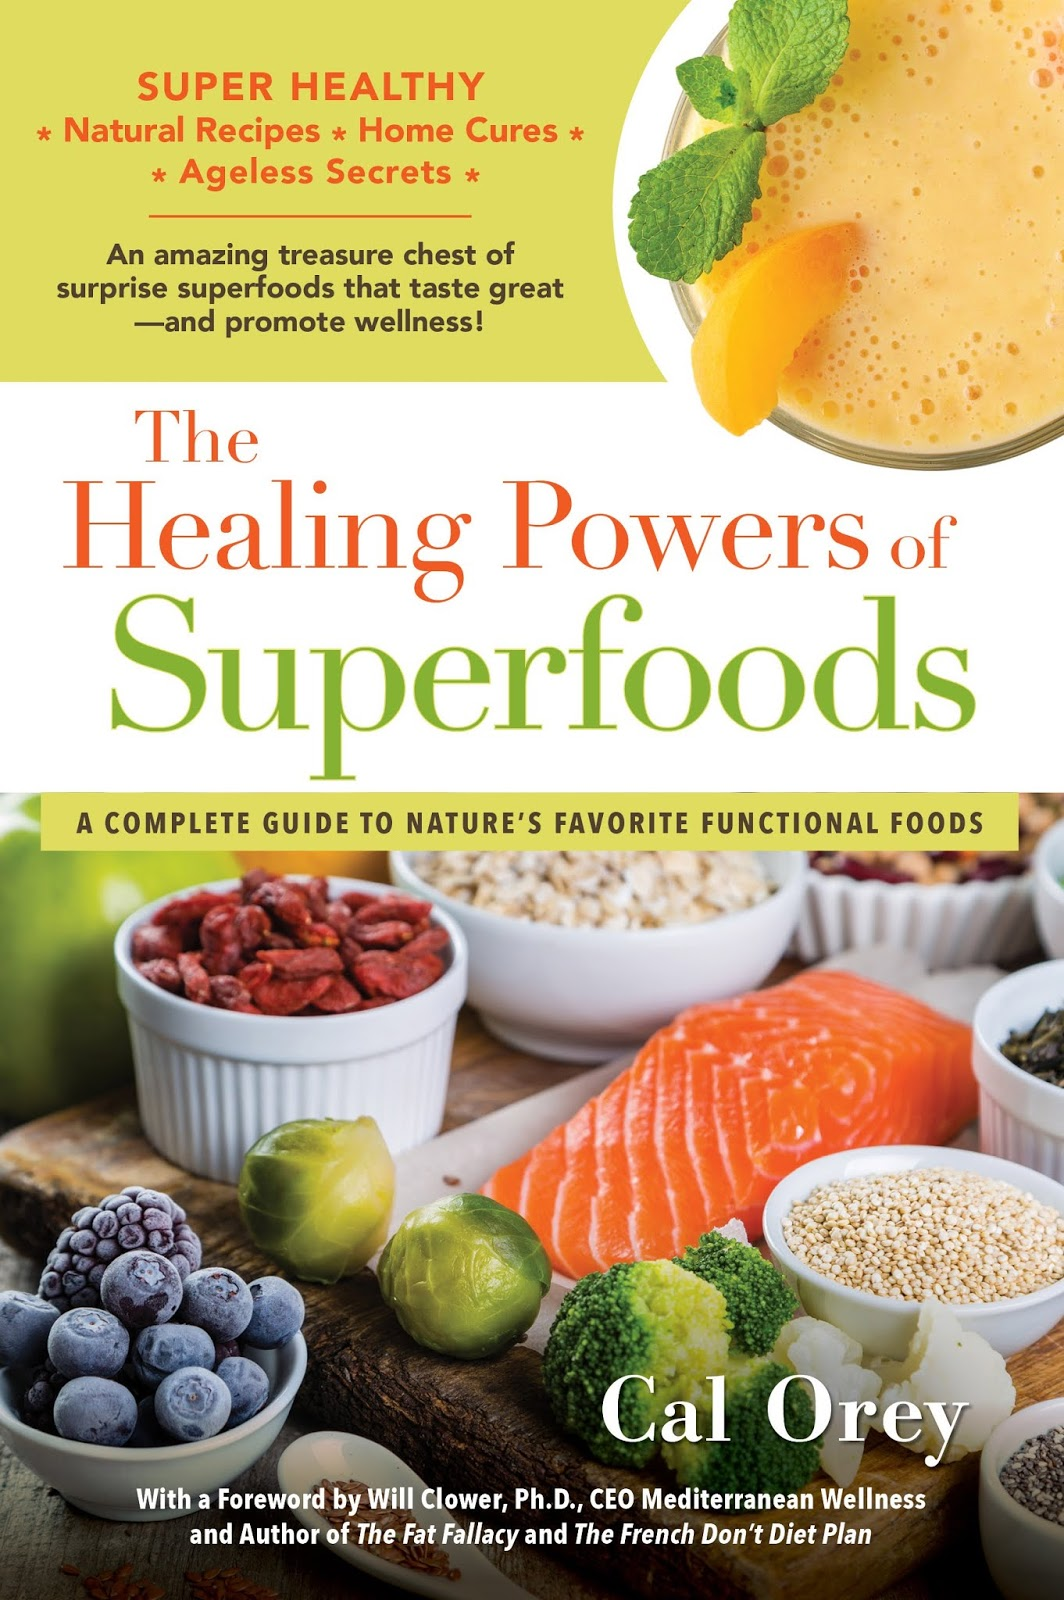 The Writing Gourmet: NEW Superfoods Book Touts Heart-Healthy